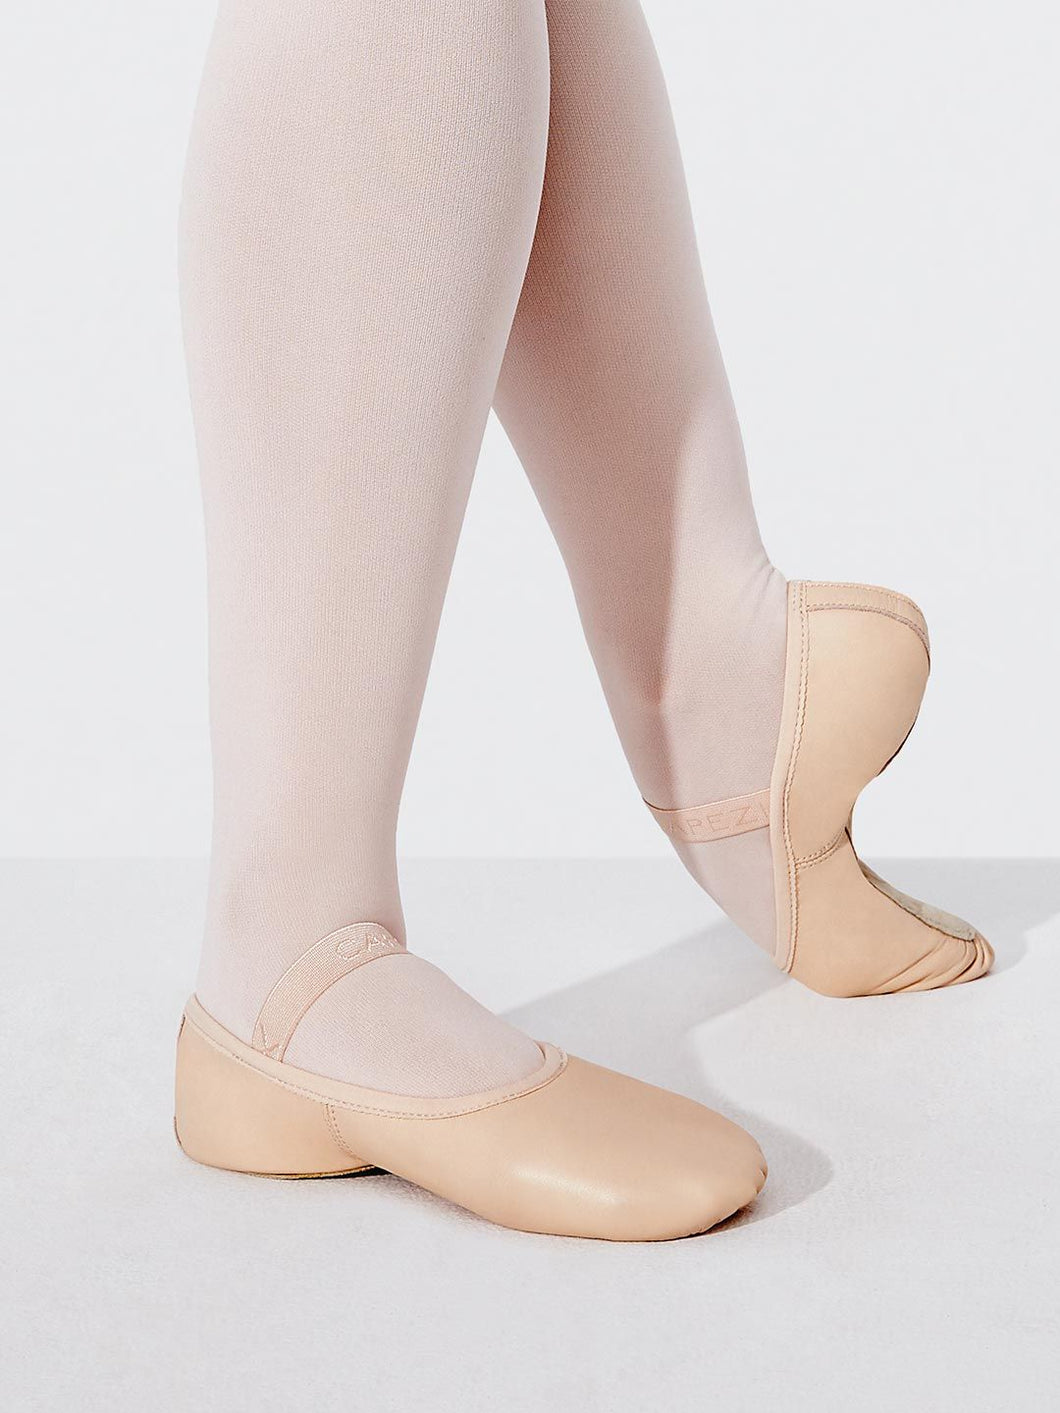 Lily Ballet Shoe Adult - 212W Narrow Fit